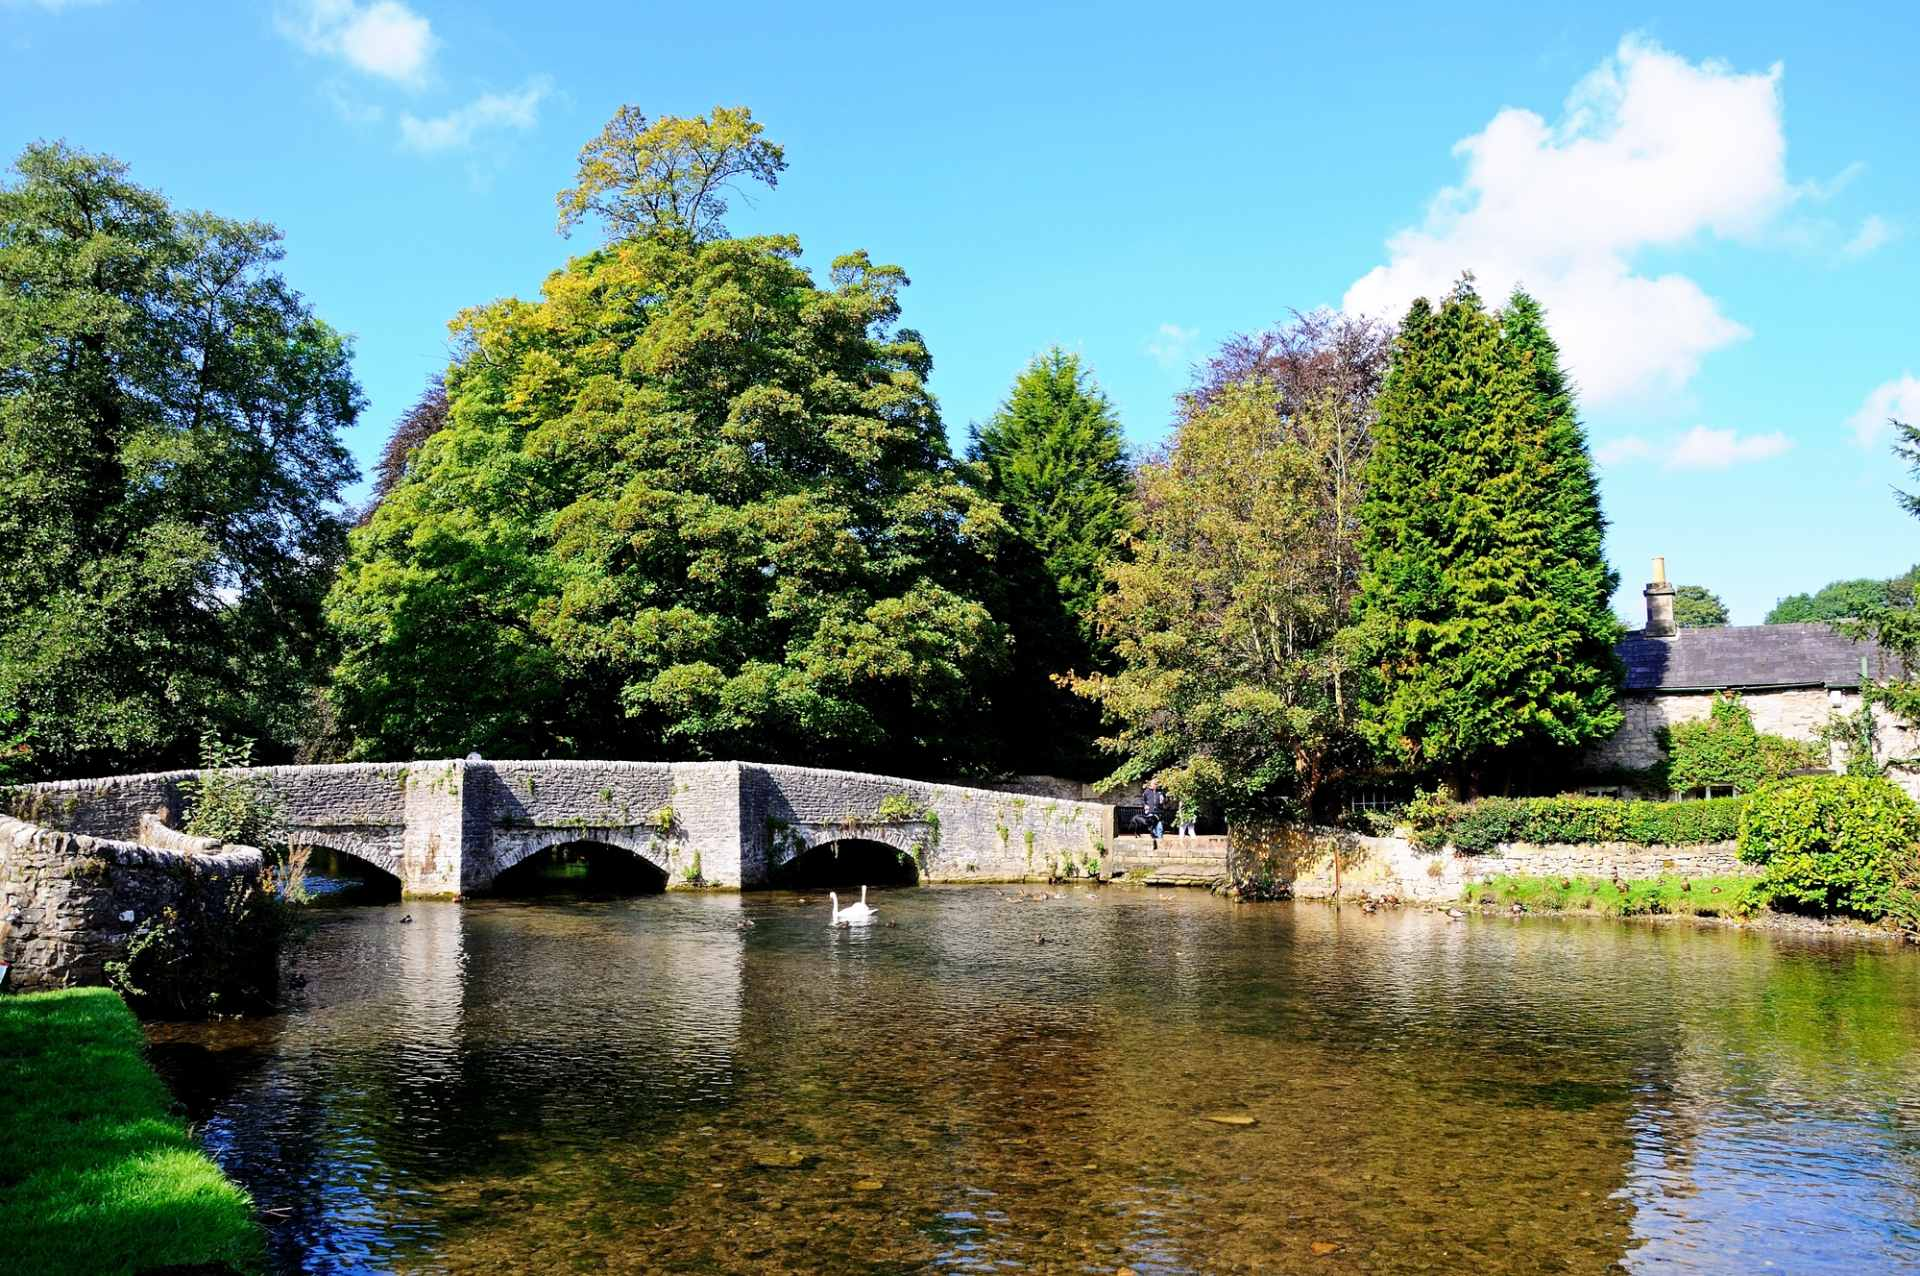 sheepwash-bridge-on-the-river-wye-on-sunny-day-in-ashford-in-the-water